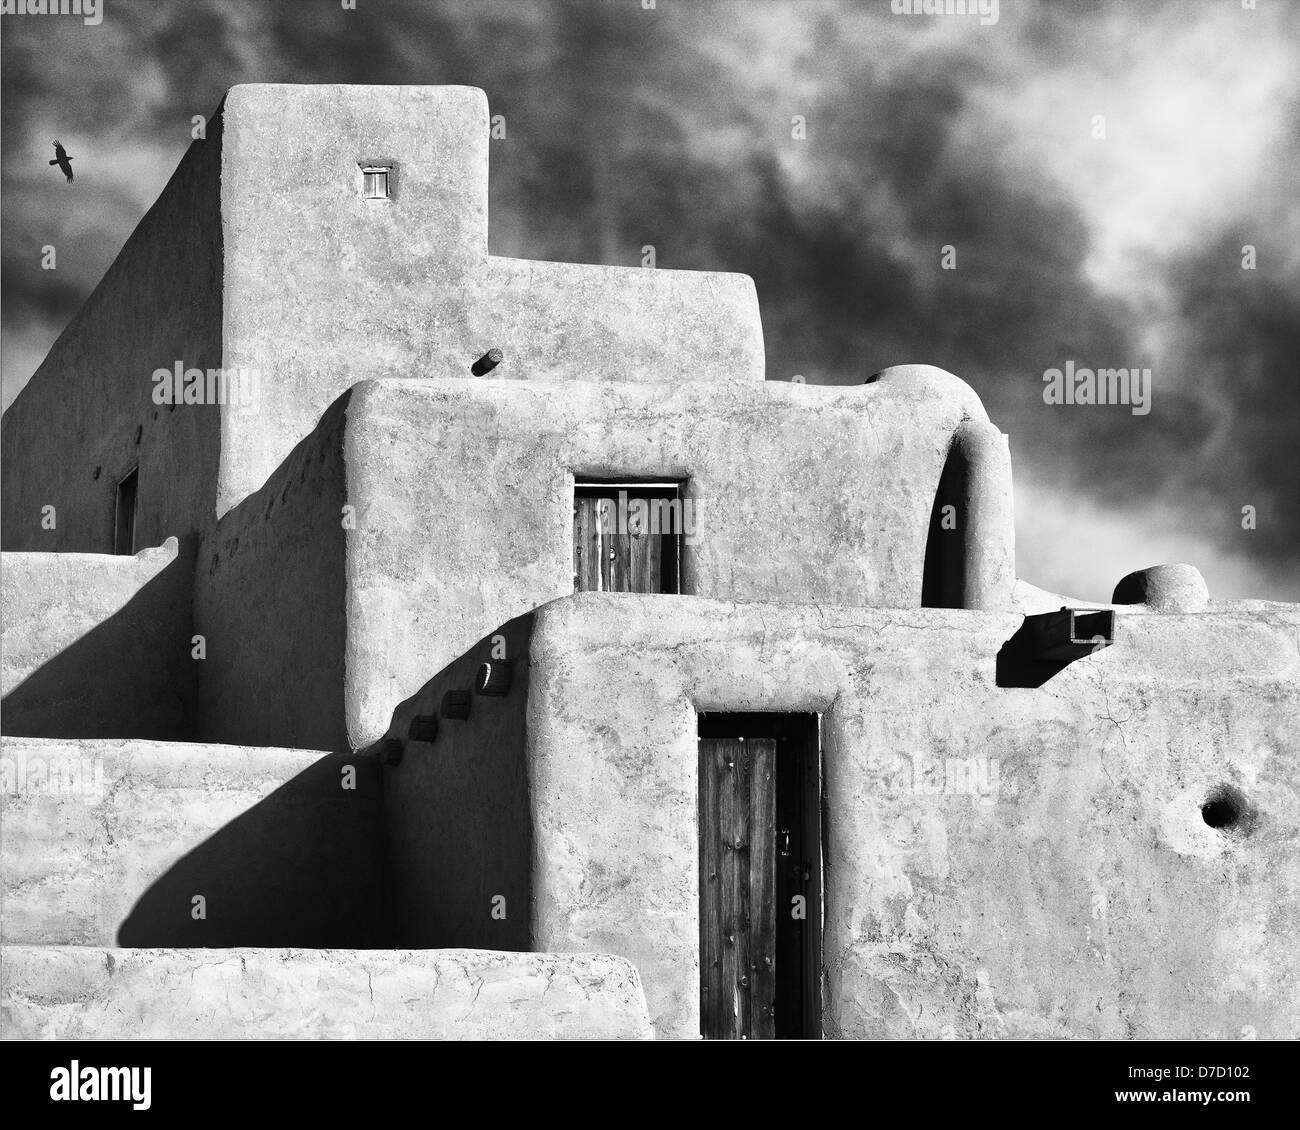 The Taos Pueblo Stacks. Black and White image in the style of W.H.Jackson and Ansel Adams - Stock Image